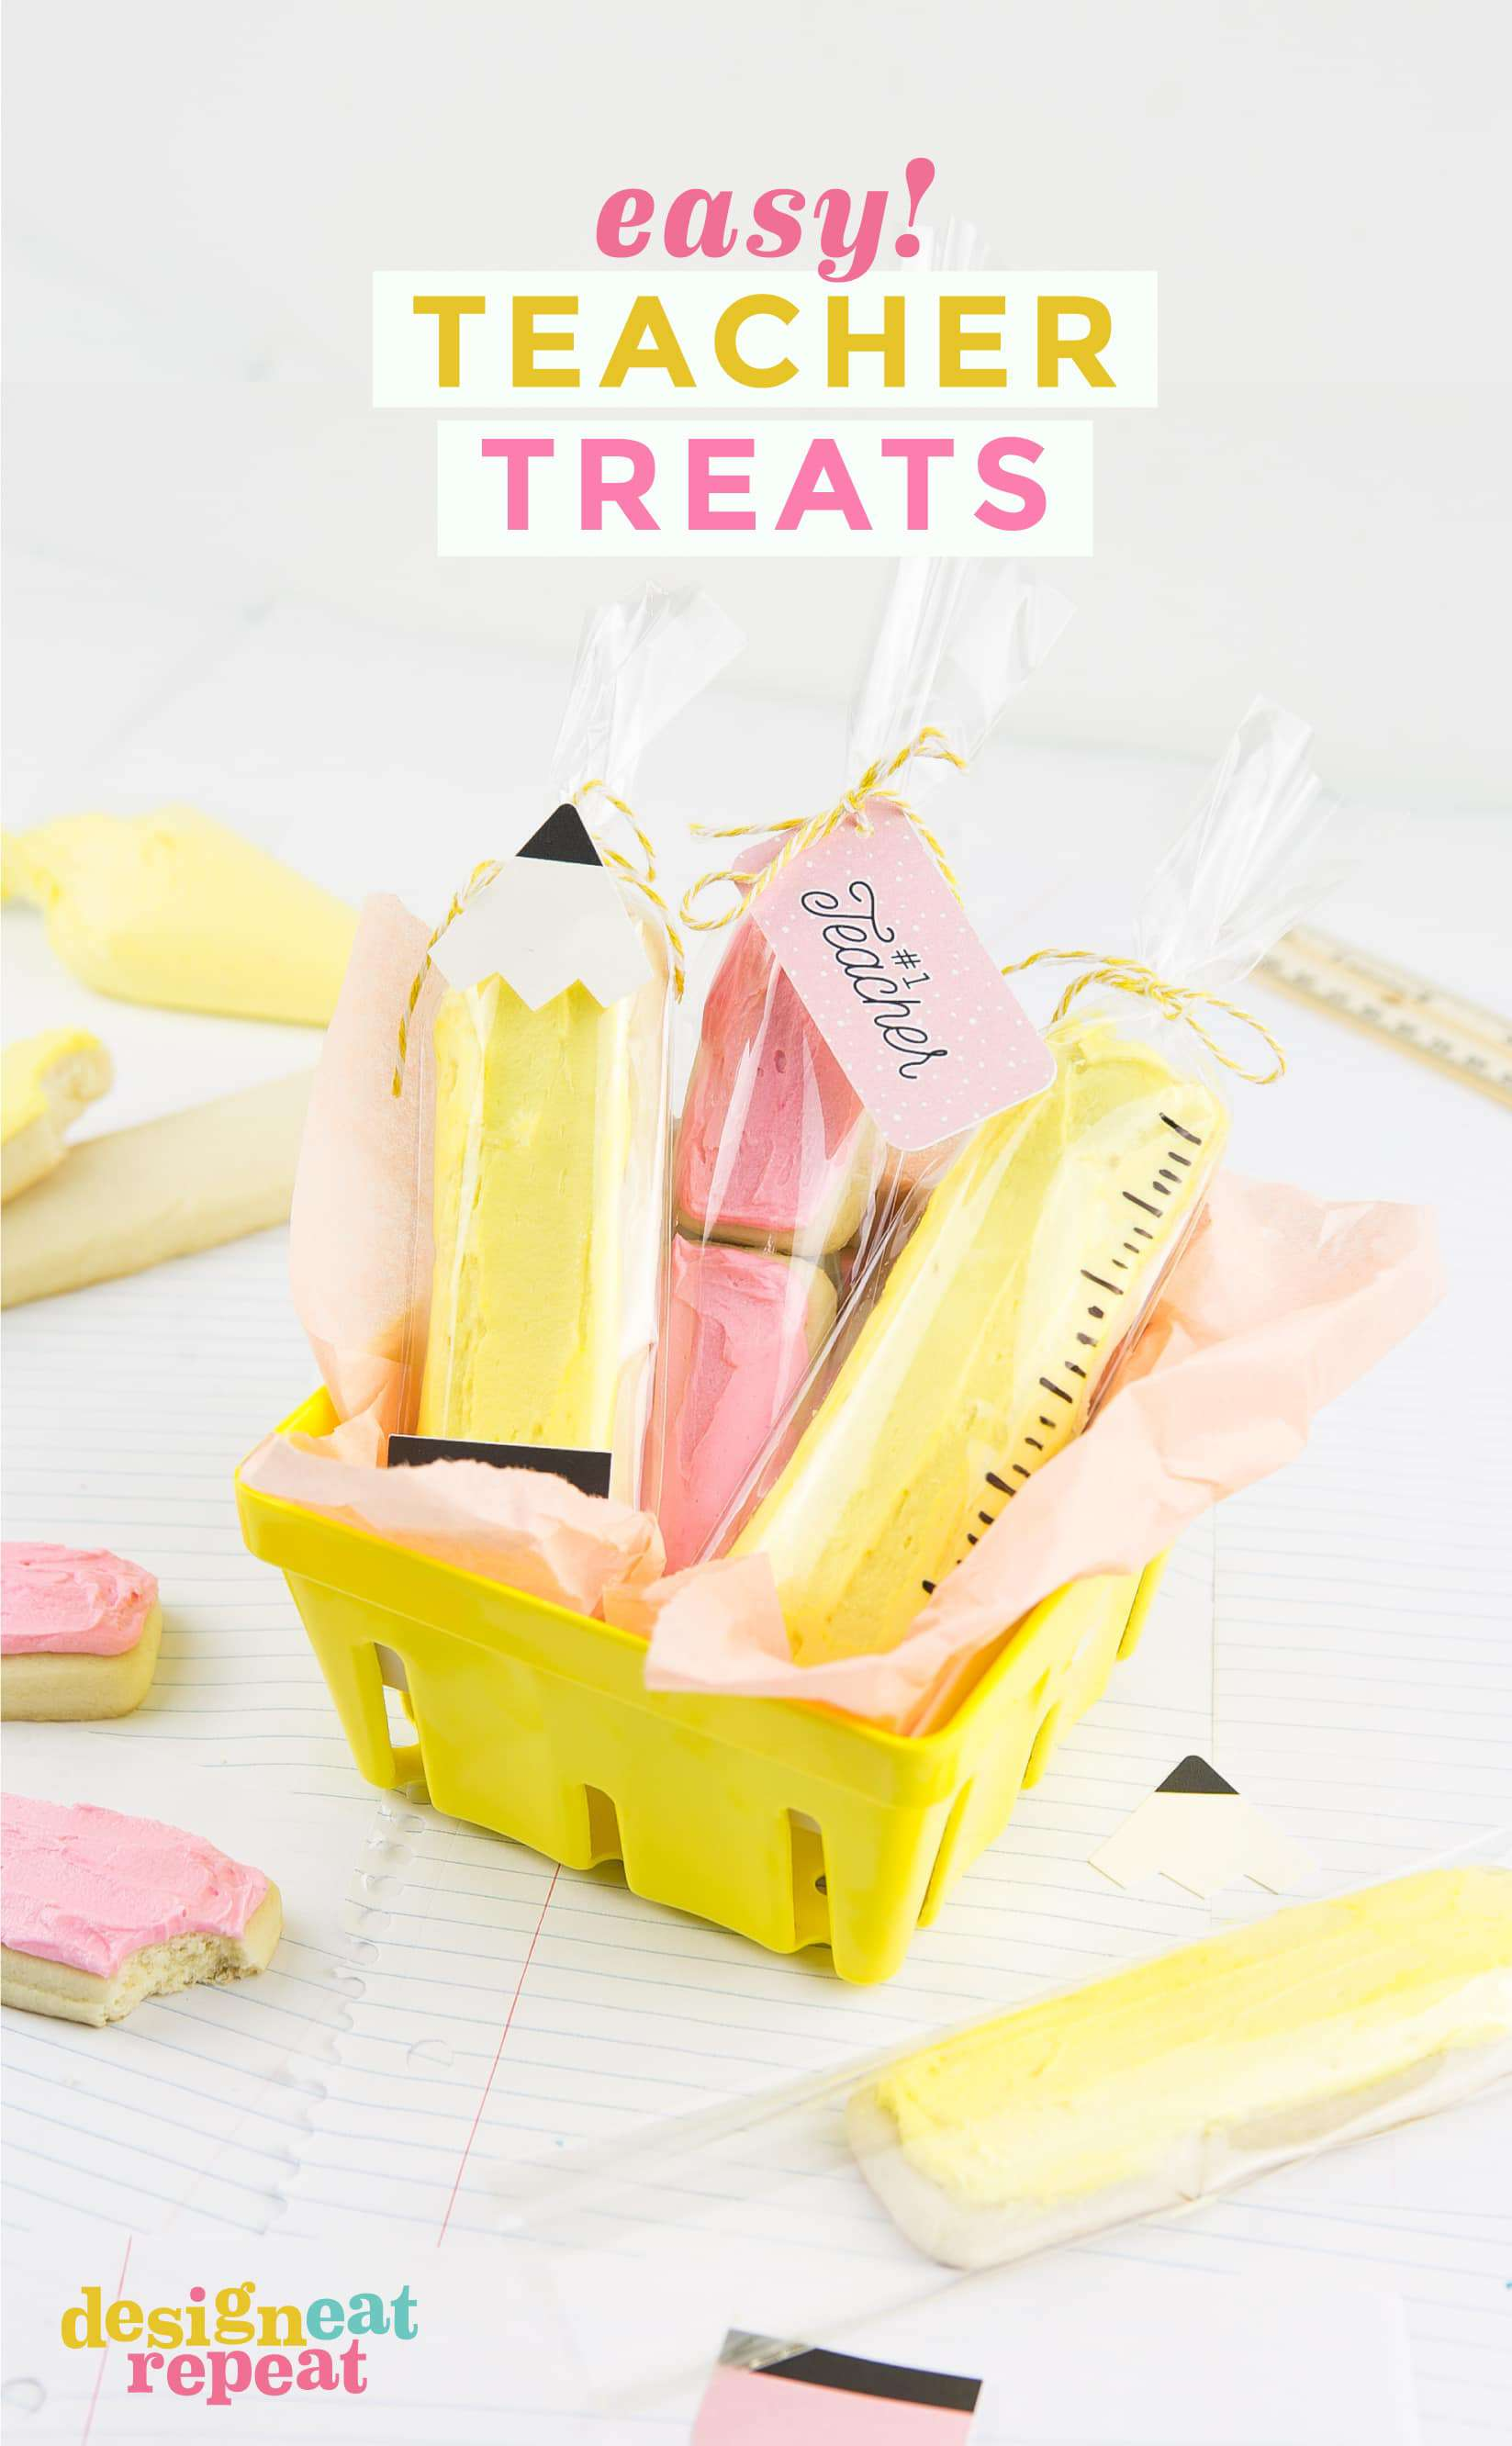 Whip up these easy teacher treats as a way to thank the teachers in your life! No fancy decorating needed - just cookies, clear treat bags, and cute printables!